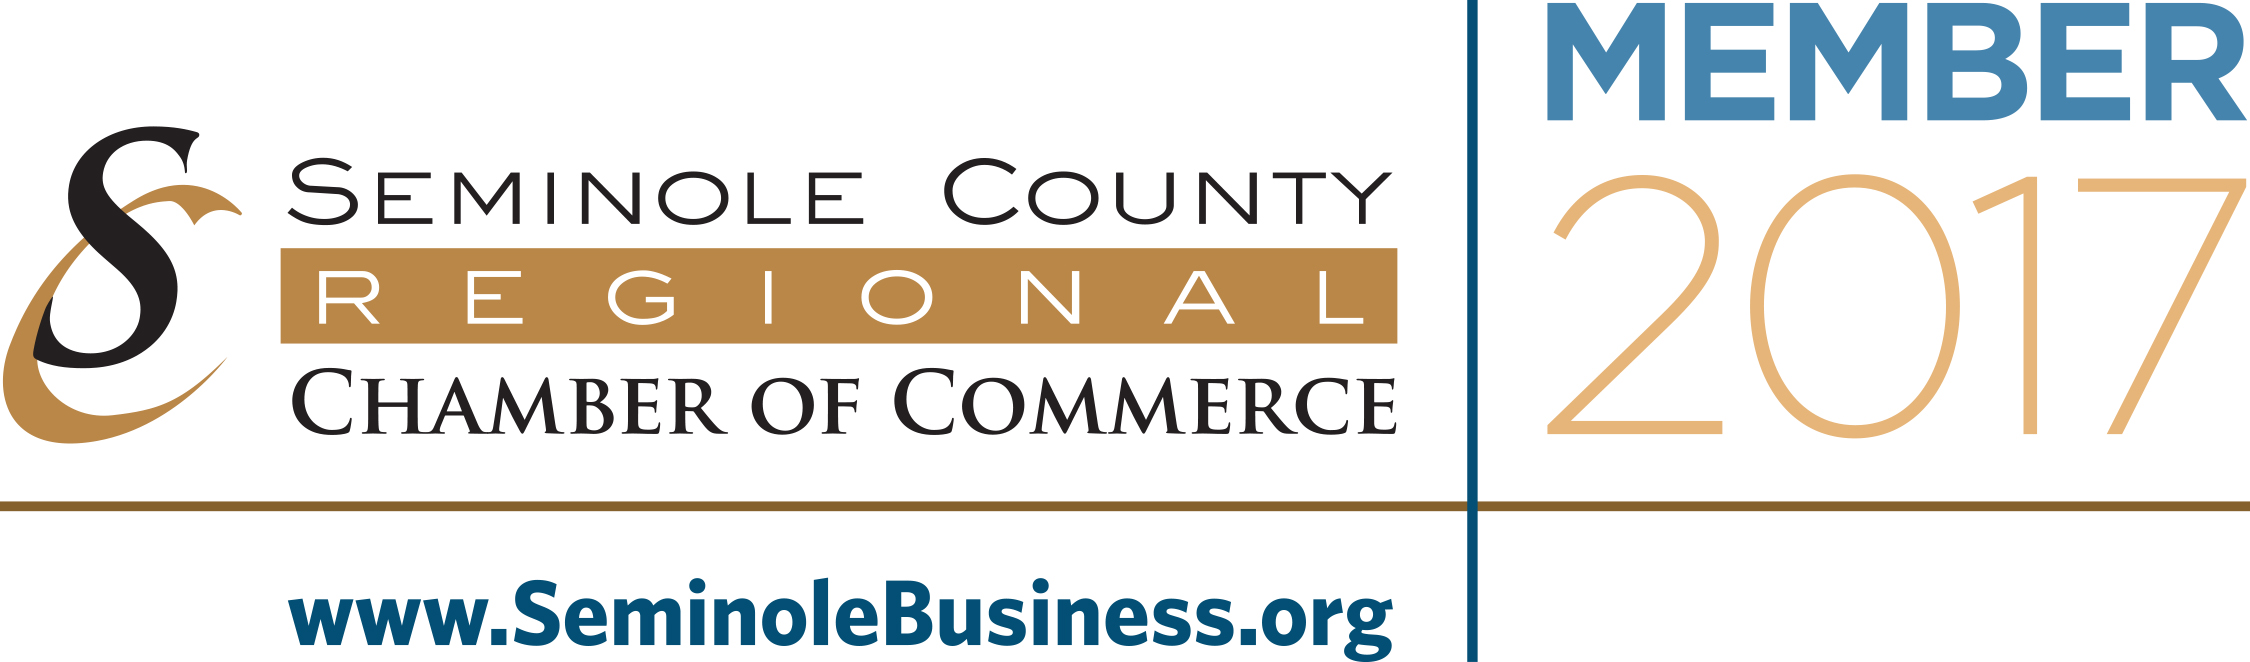 Seminole County Regional Chamber of Commerce Member